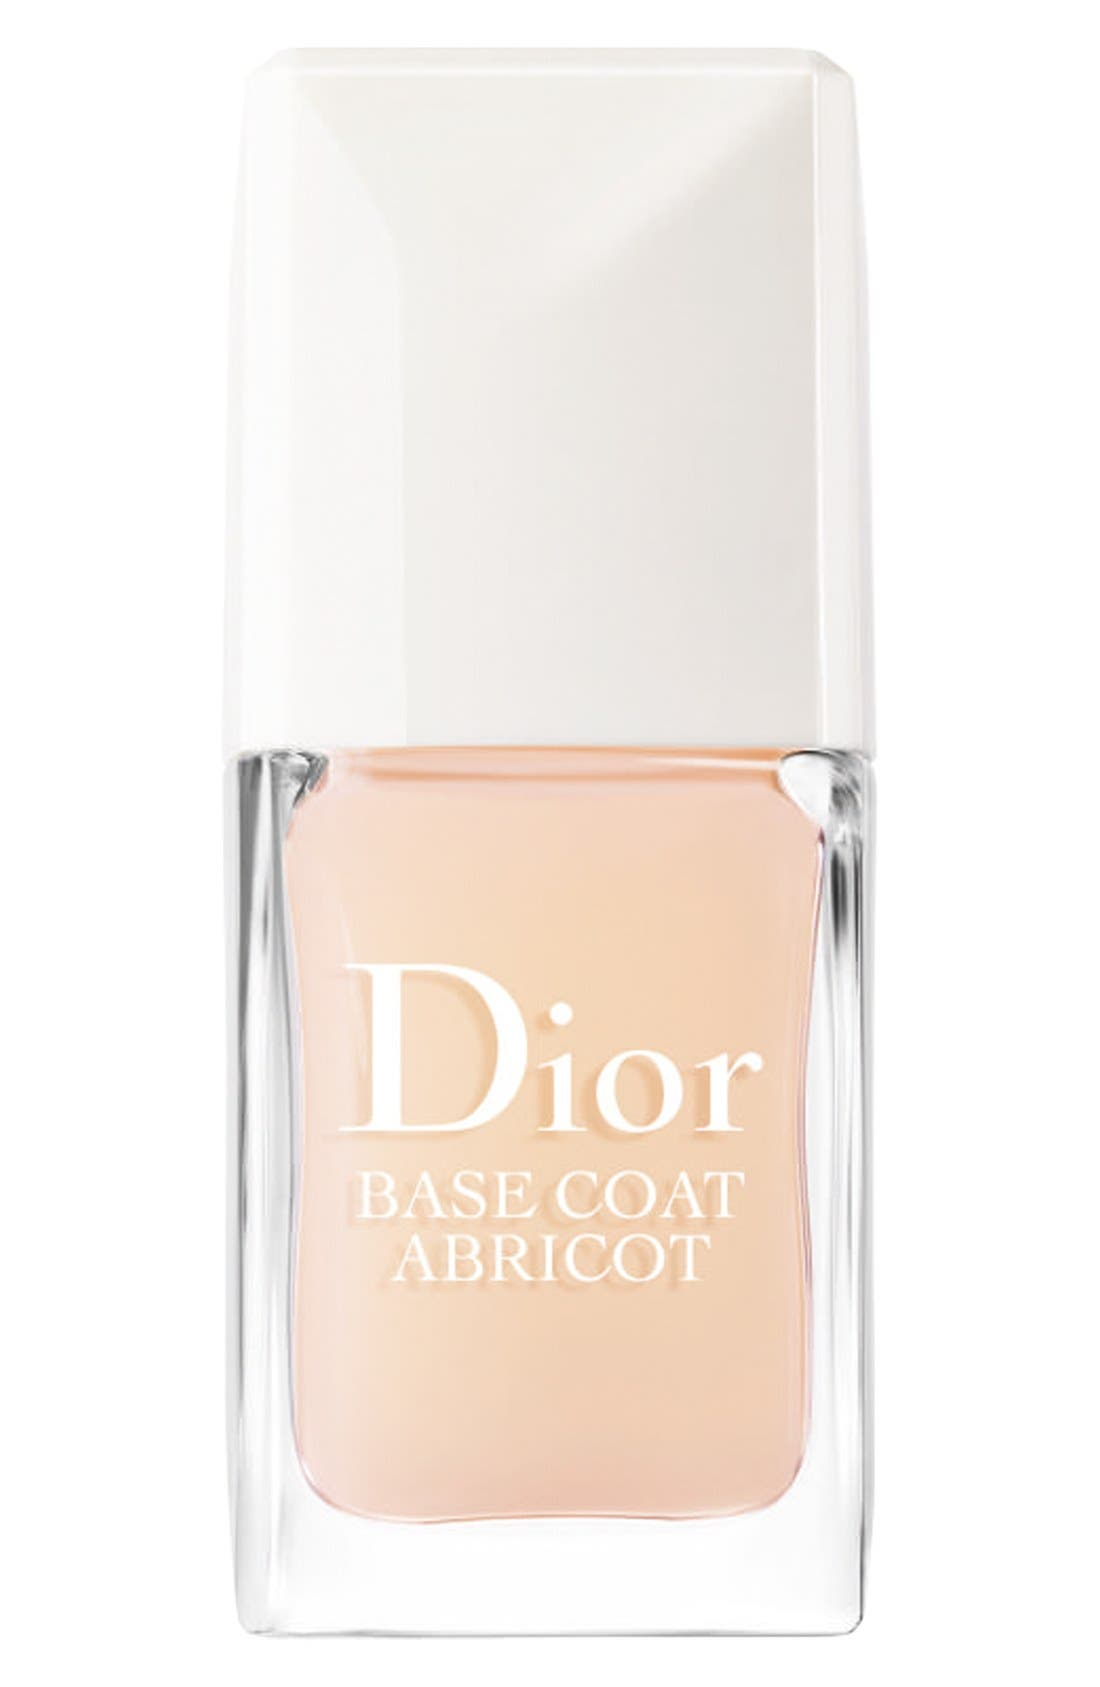 Crème Abricot Base Coat,                             Main thumbnail 1, color,                             BASE COAT